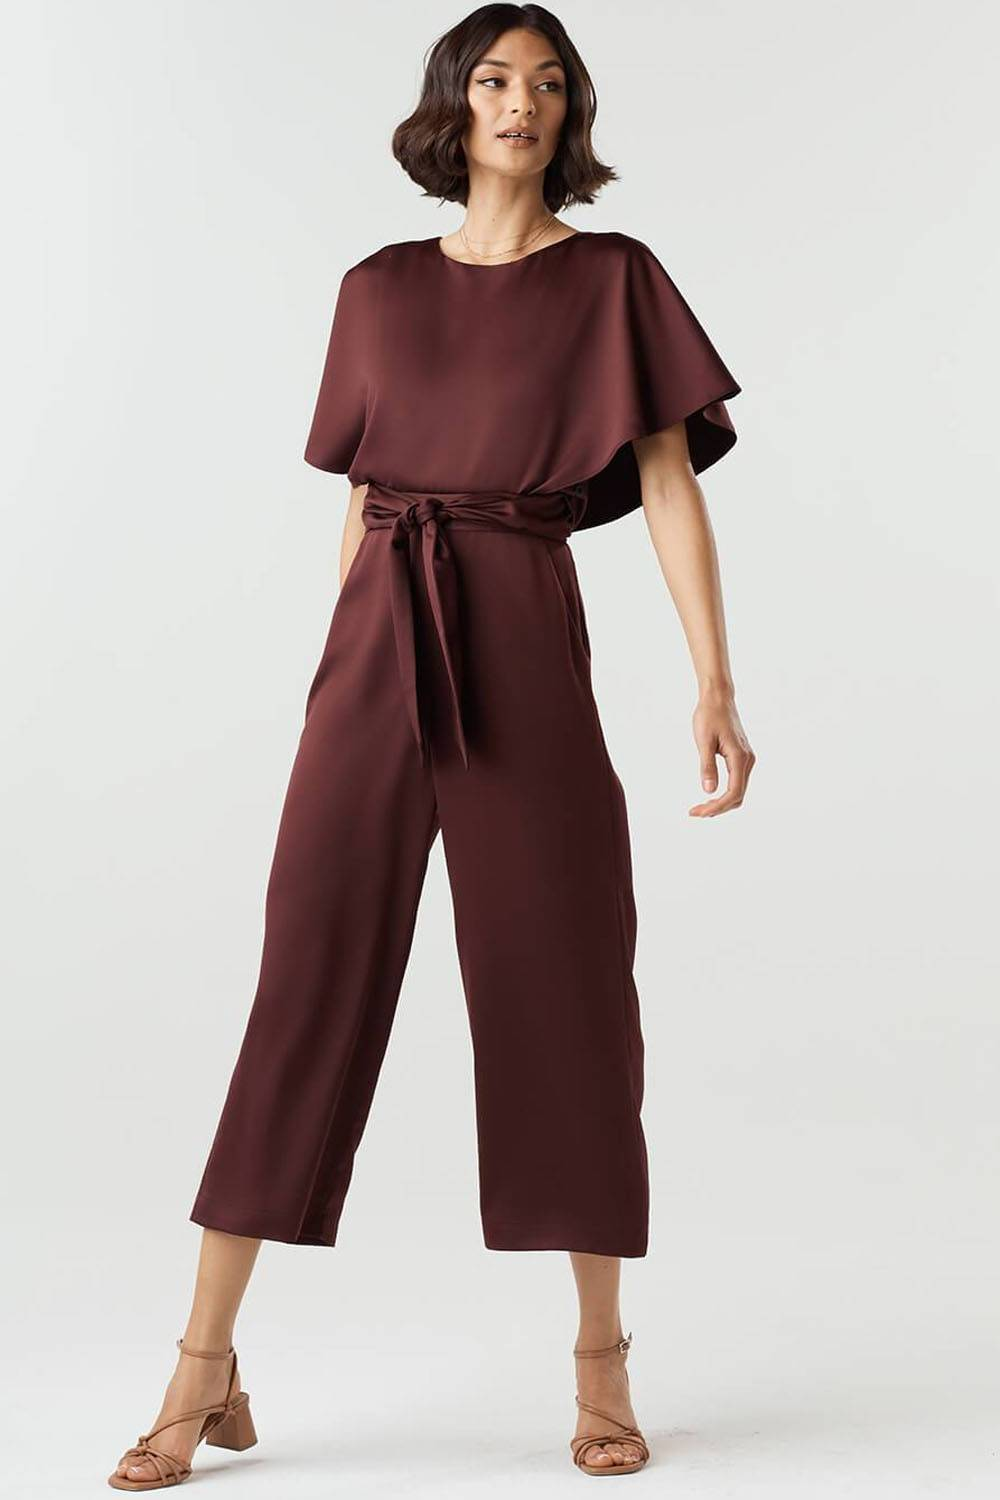 vetta capsule cheap recycled jumpsuit